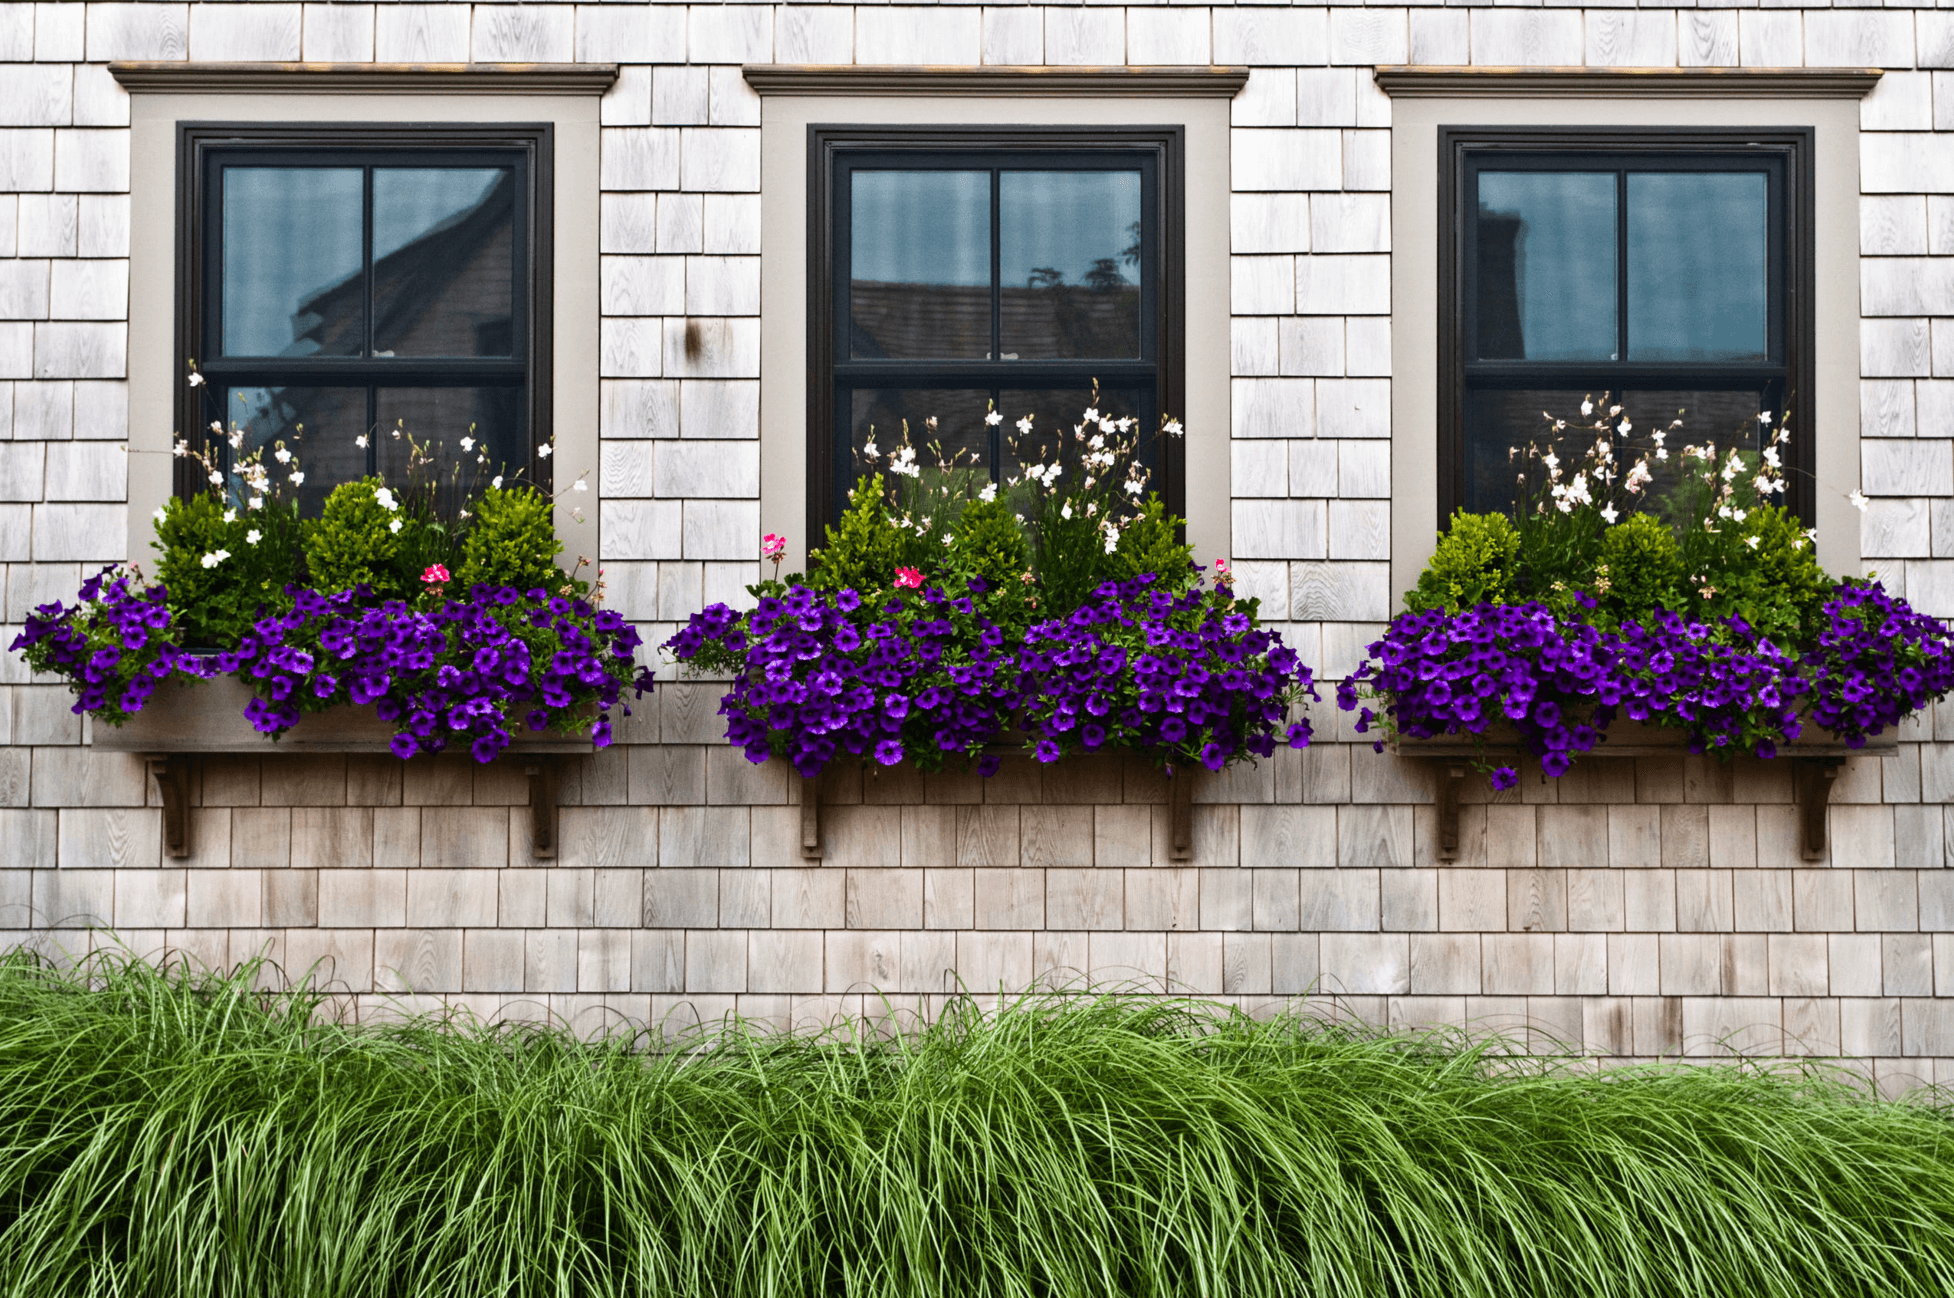 planter boxes with bright purple and white blooms will keep your spaces more private while adding beauty on the outside